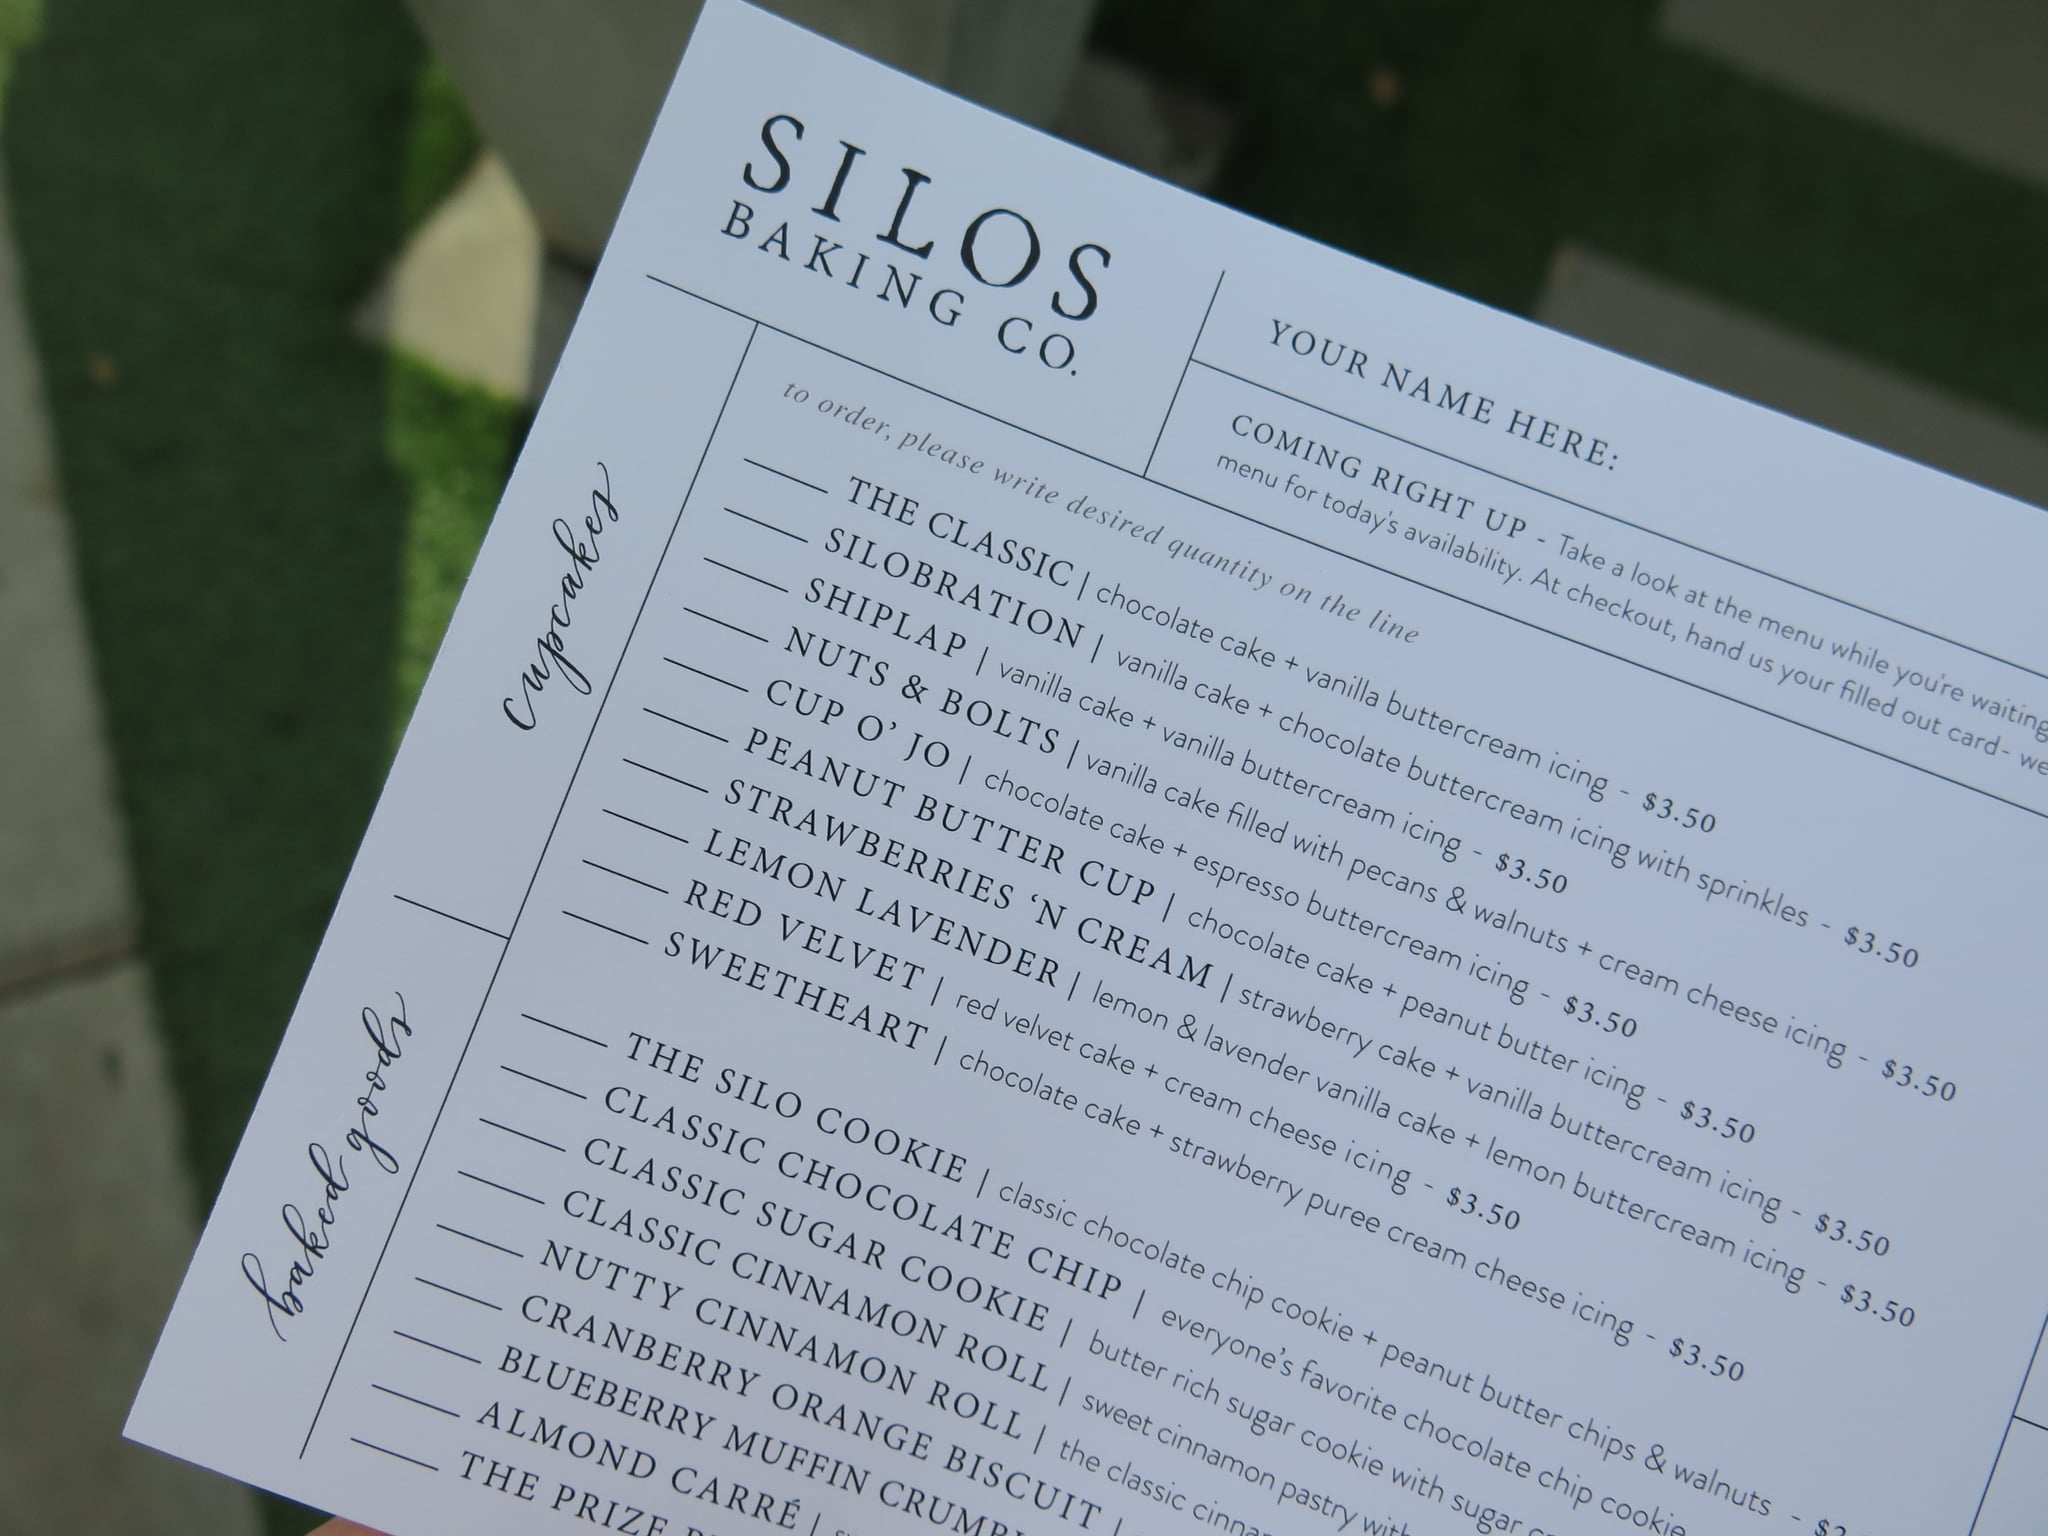 What to Order at Silos Baking Co  | POPSUGAR Home